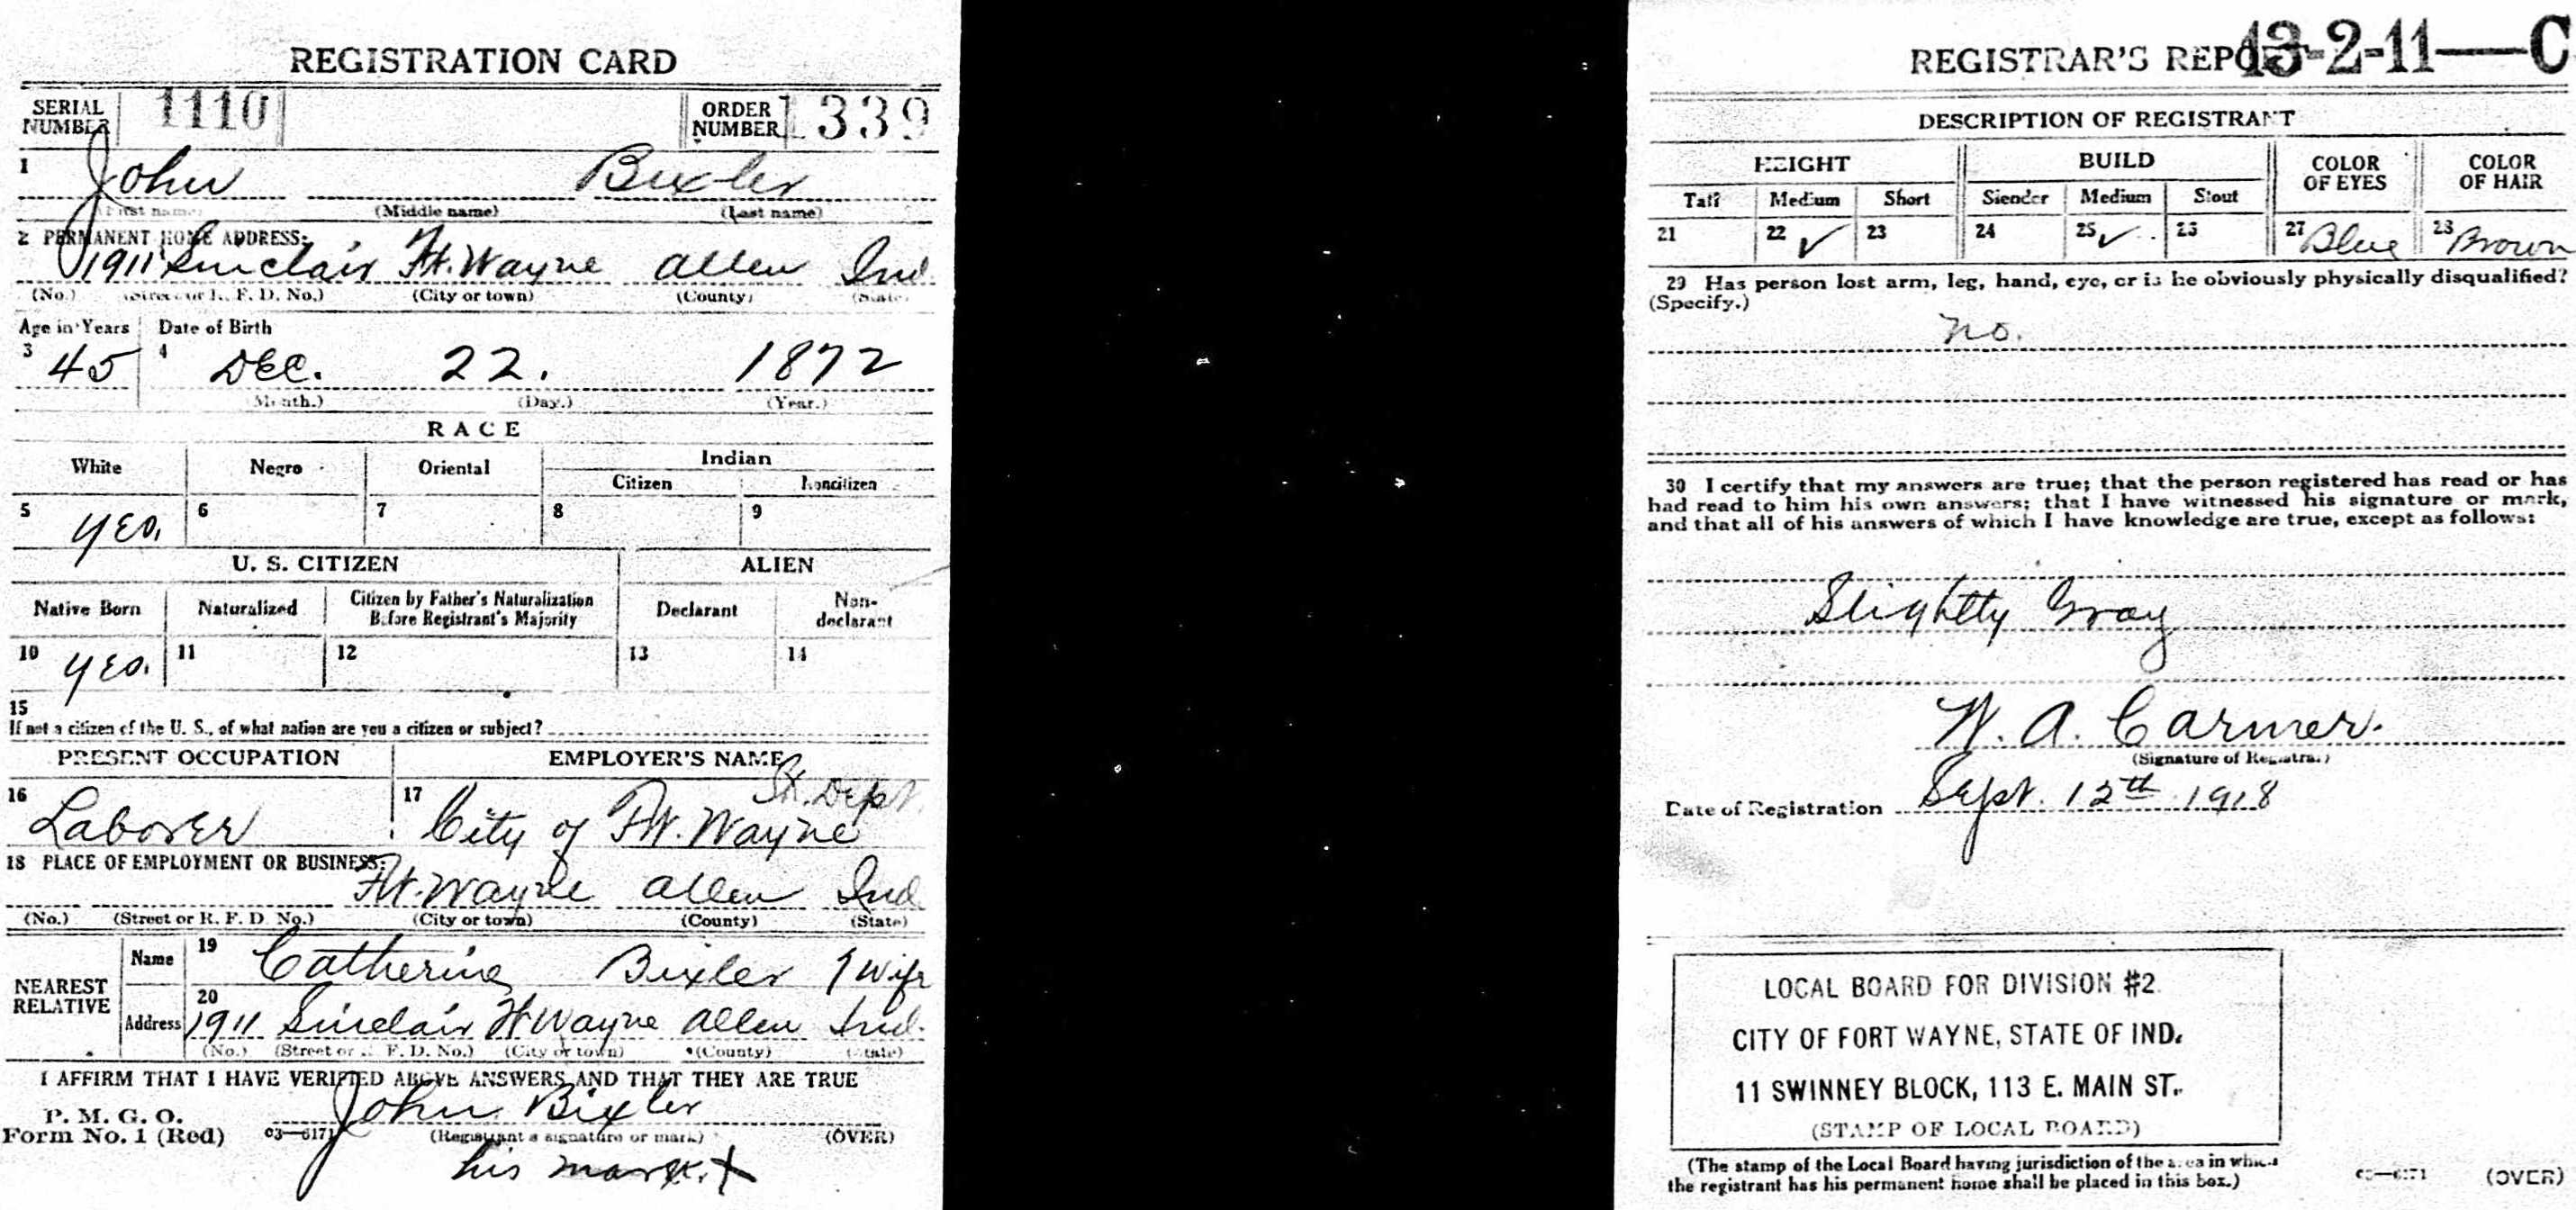 John Bixler - WWI draft card